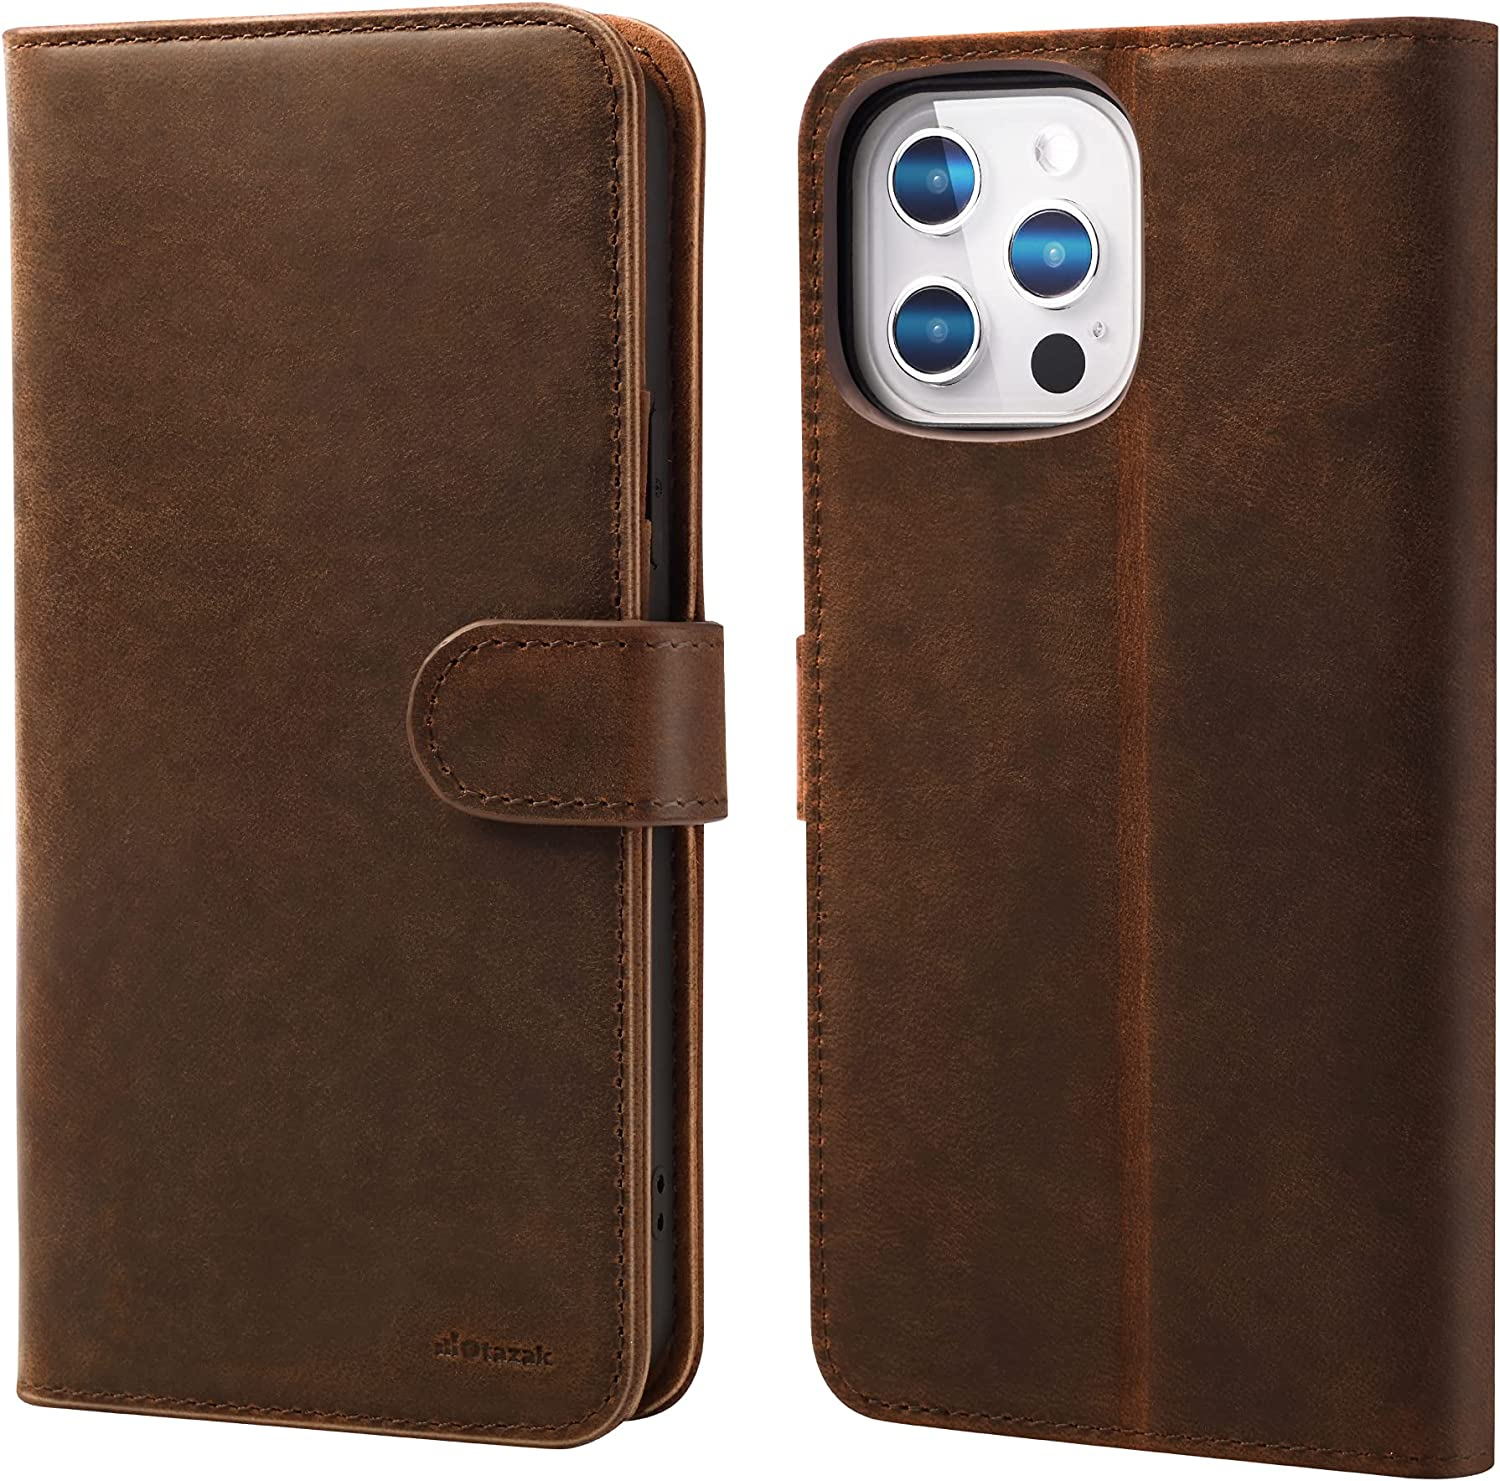 Wallet Case for iPhone 12 Pro Max, Leather Folio Flip Wallet Case for iPhone 12 Pro Max, (Genuine Crazy Horse Cowhide)(Handcrafted Fully), RFID, Card Slot, Magnet, Stand, TPU (Dark Brown 6.7)